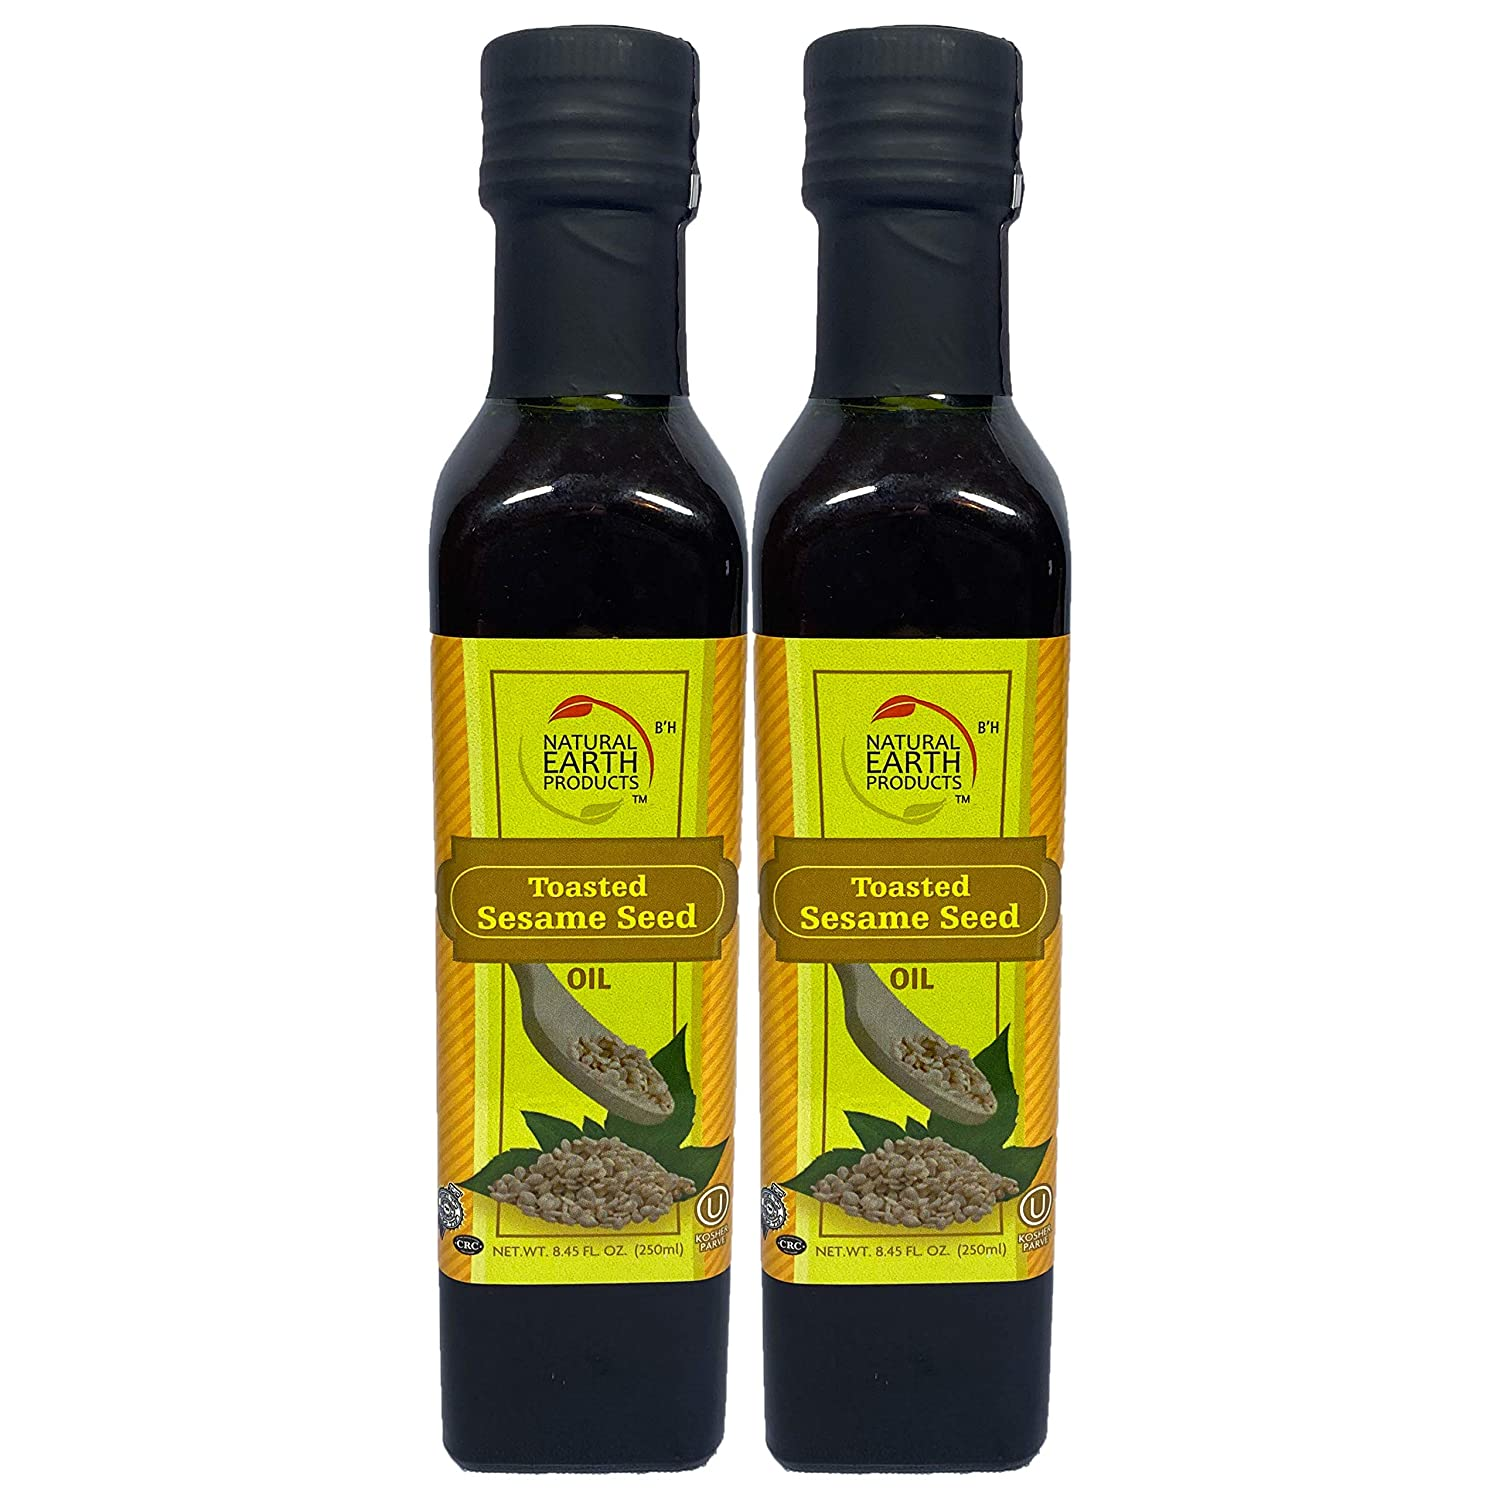 Toasted Sesame Oil, Wholesome and Tasty, Certified Kosher, 8.45 Fl Oz (2-Pack)